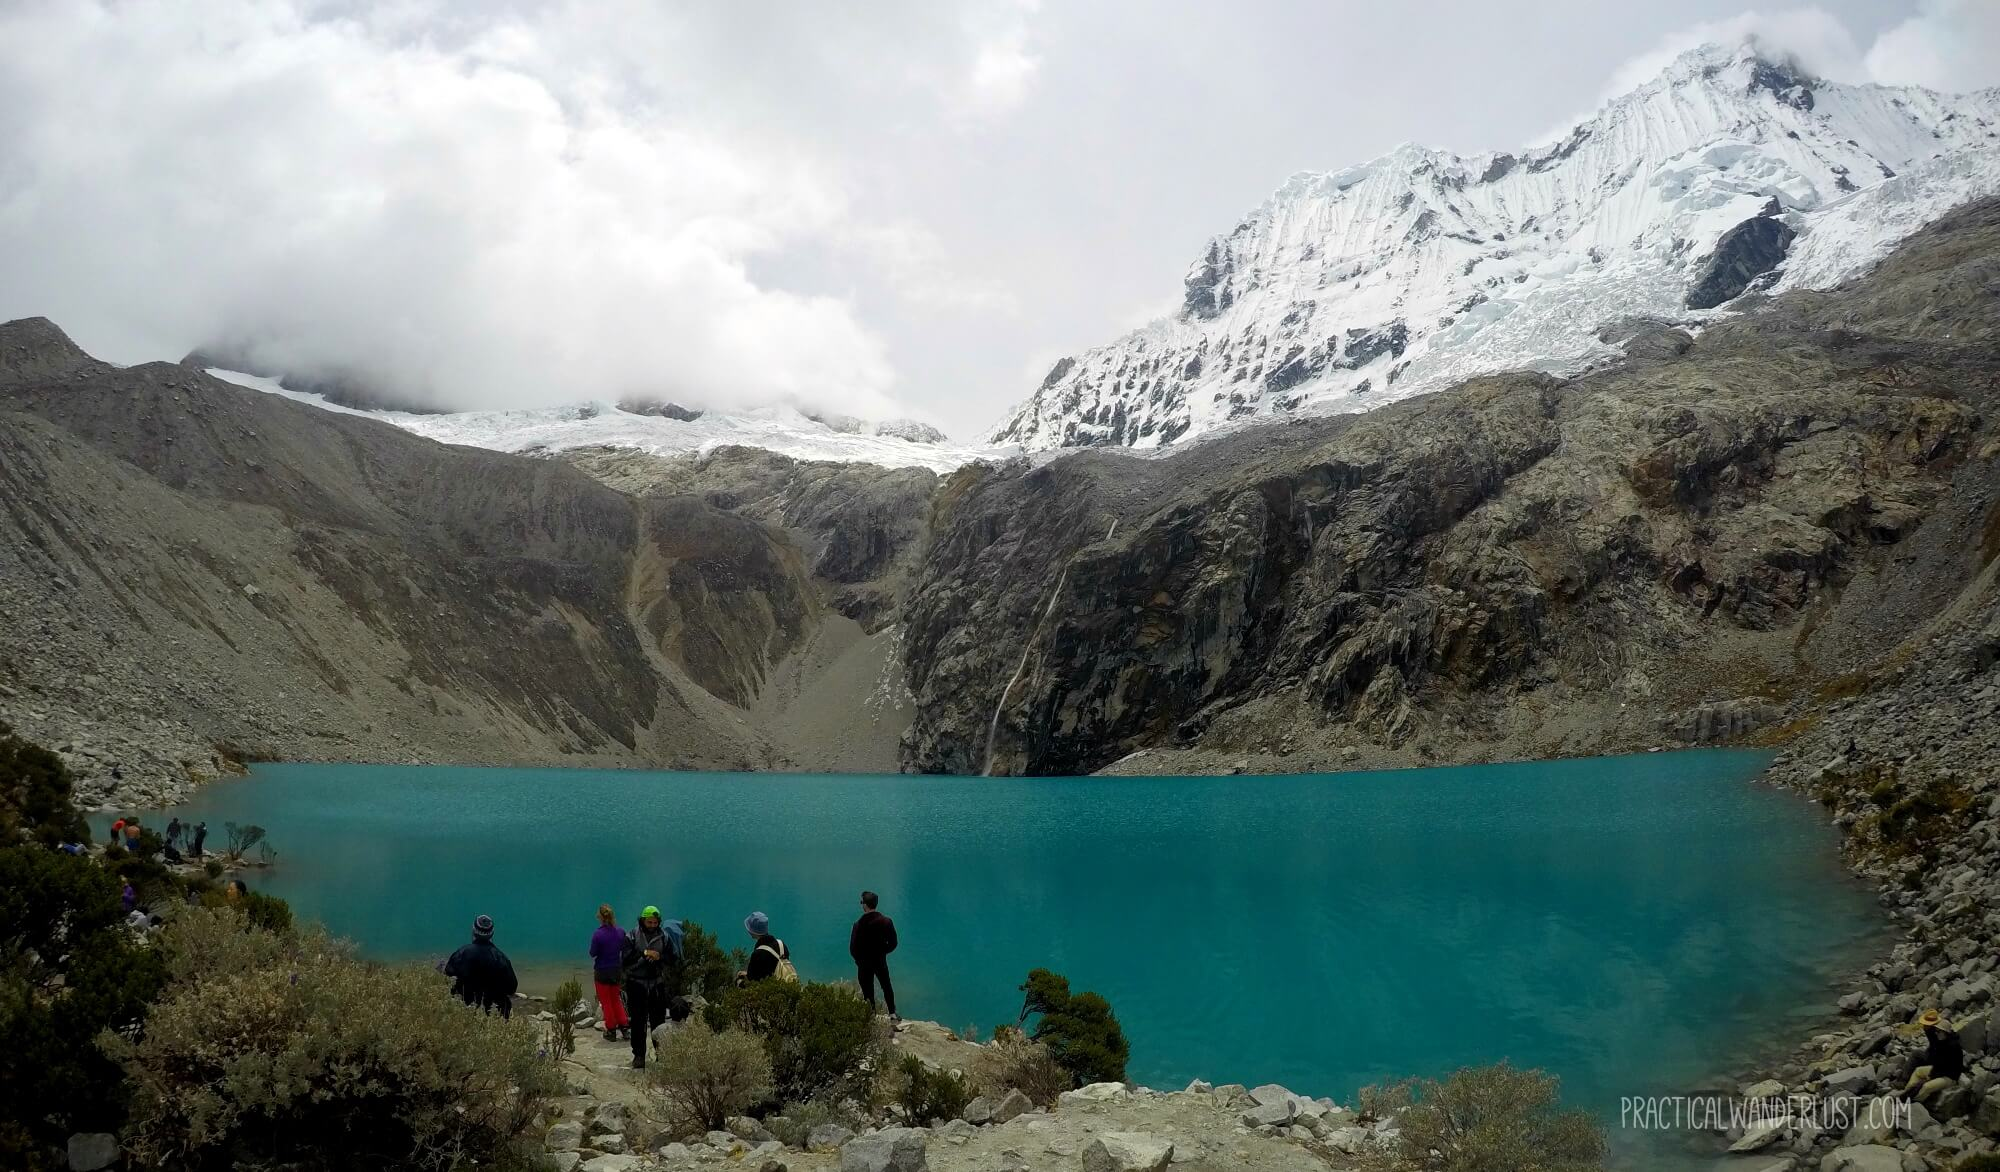 At long last and after hours of hiking, lunch at Laguna 69 in Cordillera Blancas! Laguna 69 is a glacial lake in Huaraz, Peru.